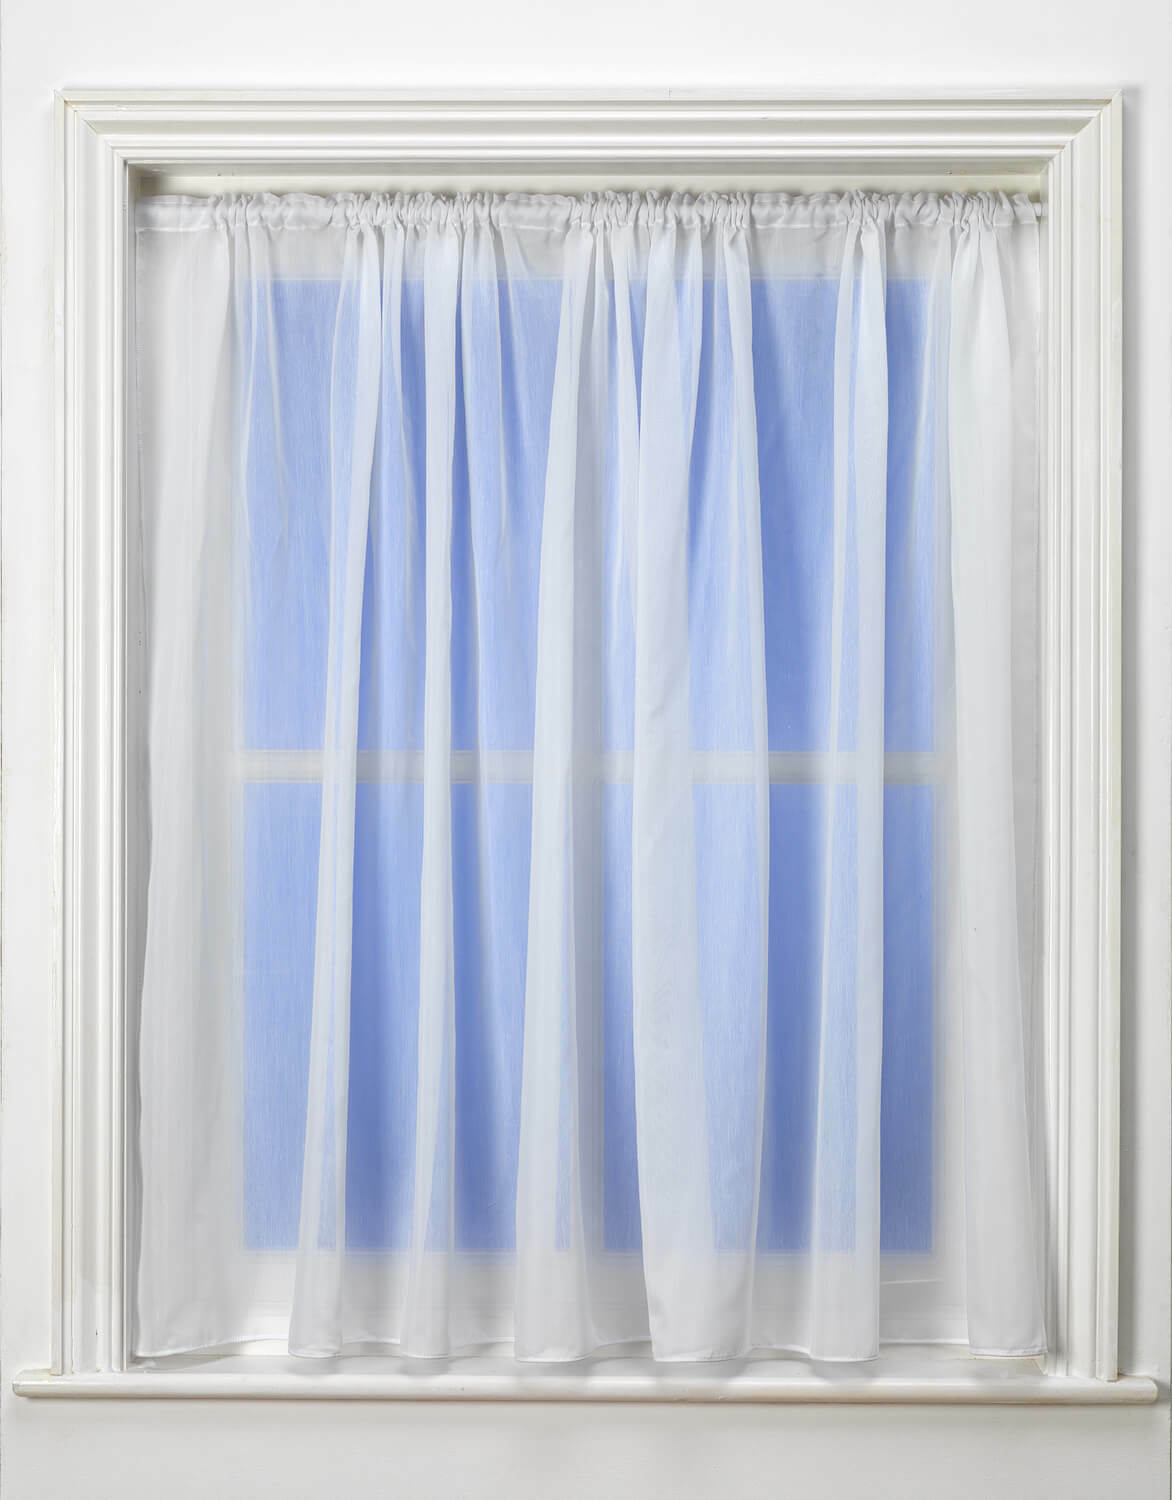 Best Selling Ripley Peru blanco Linen Look Voile Curtain - Premium Quality